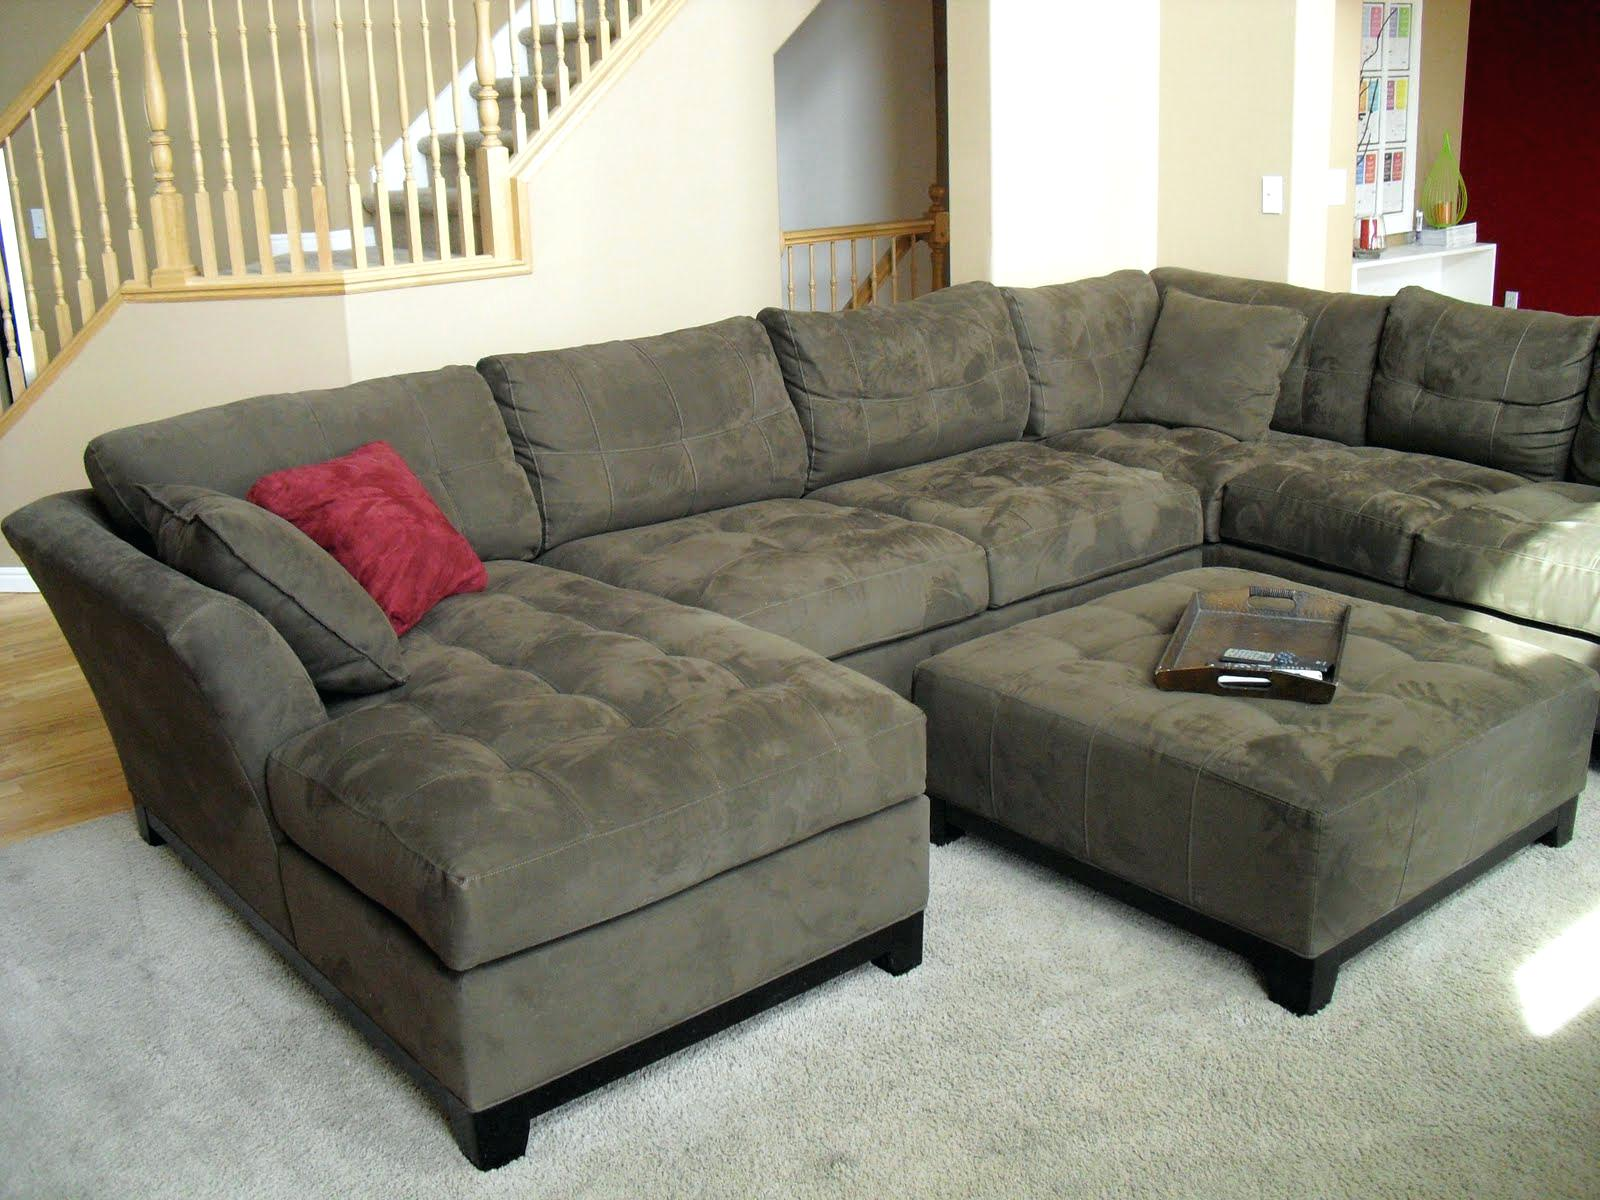 Costco Leather Sectional | Sectional Leather Sofas | Costco Couch